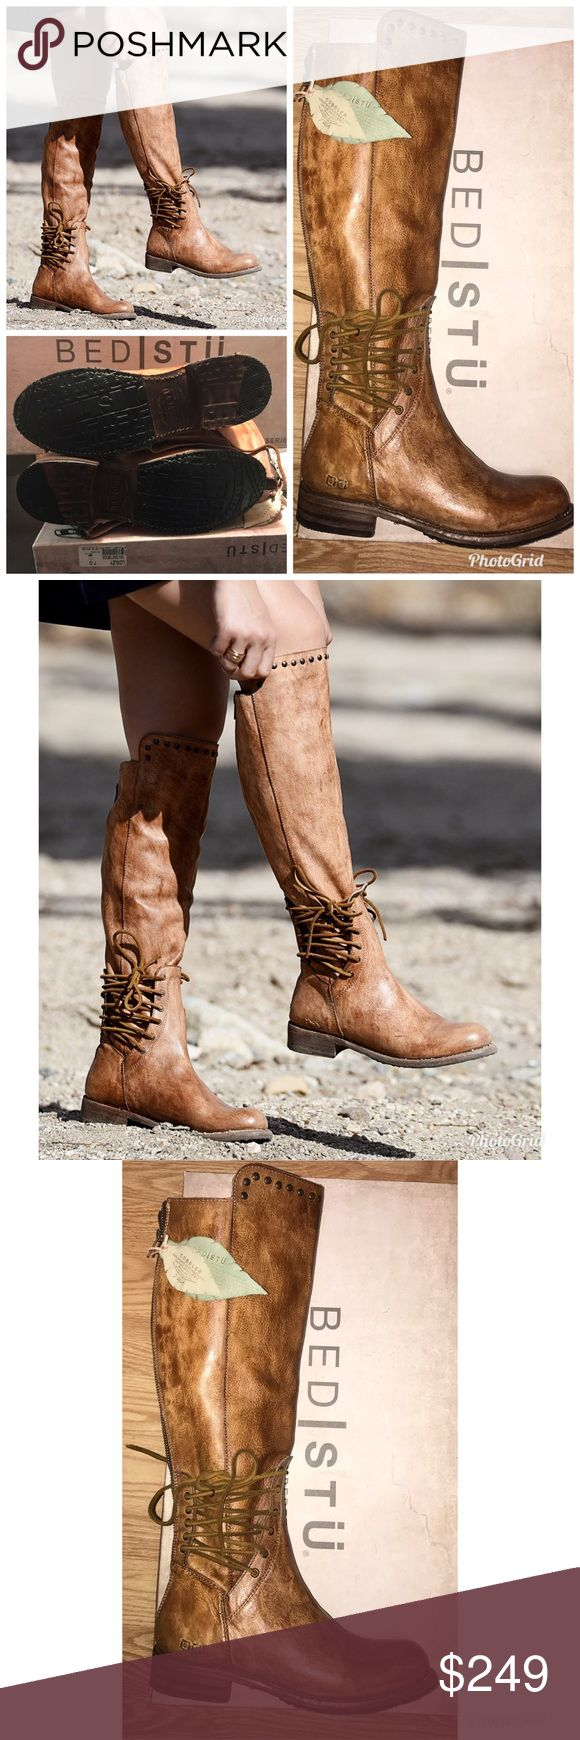 Bed stu loxley boots free people tall boot tan